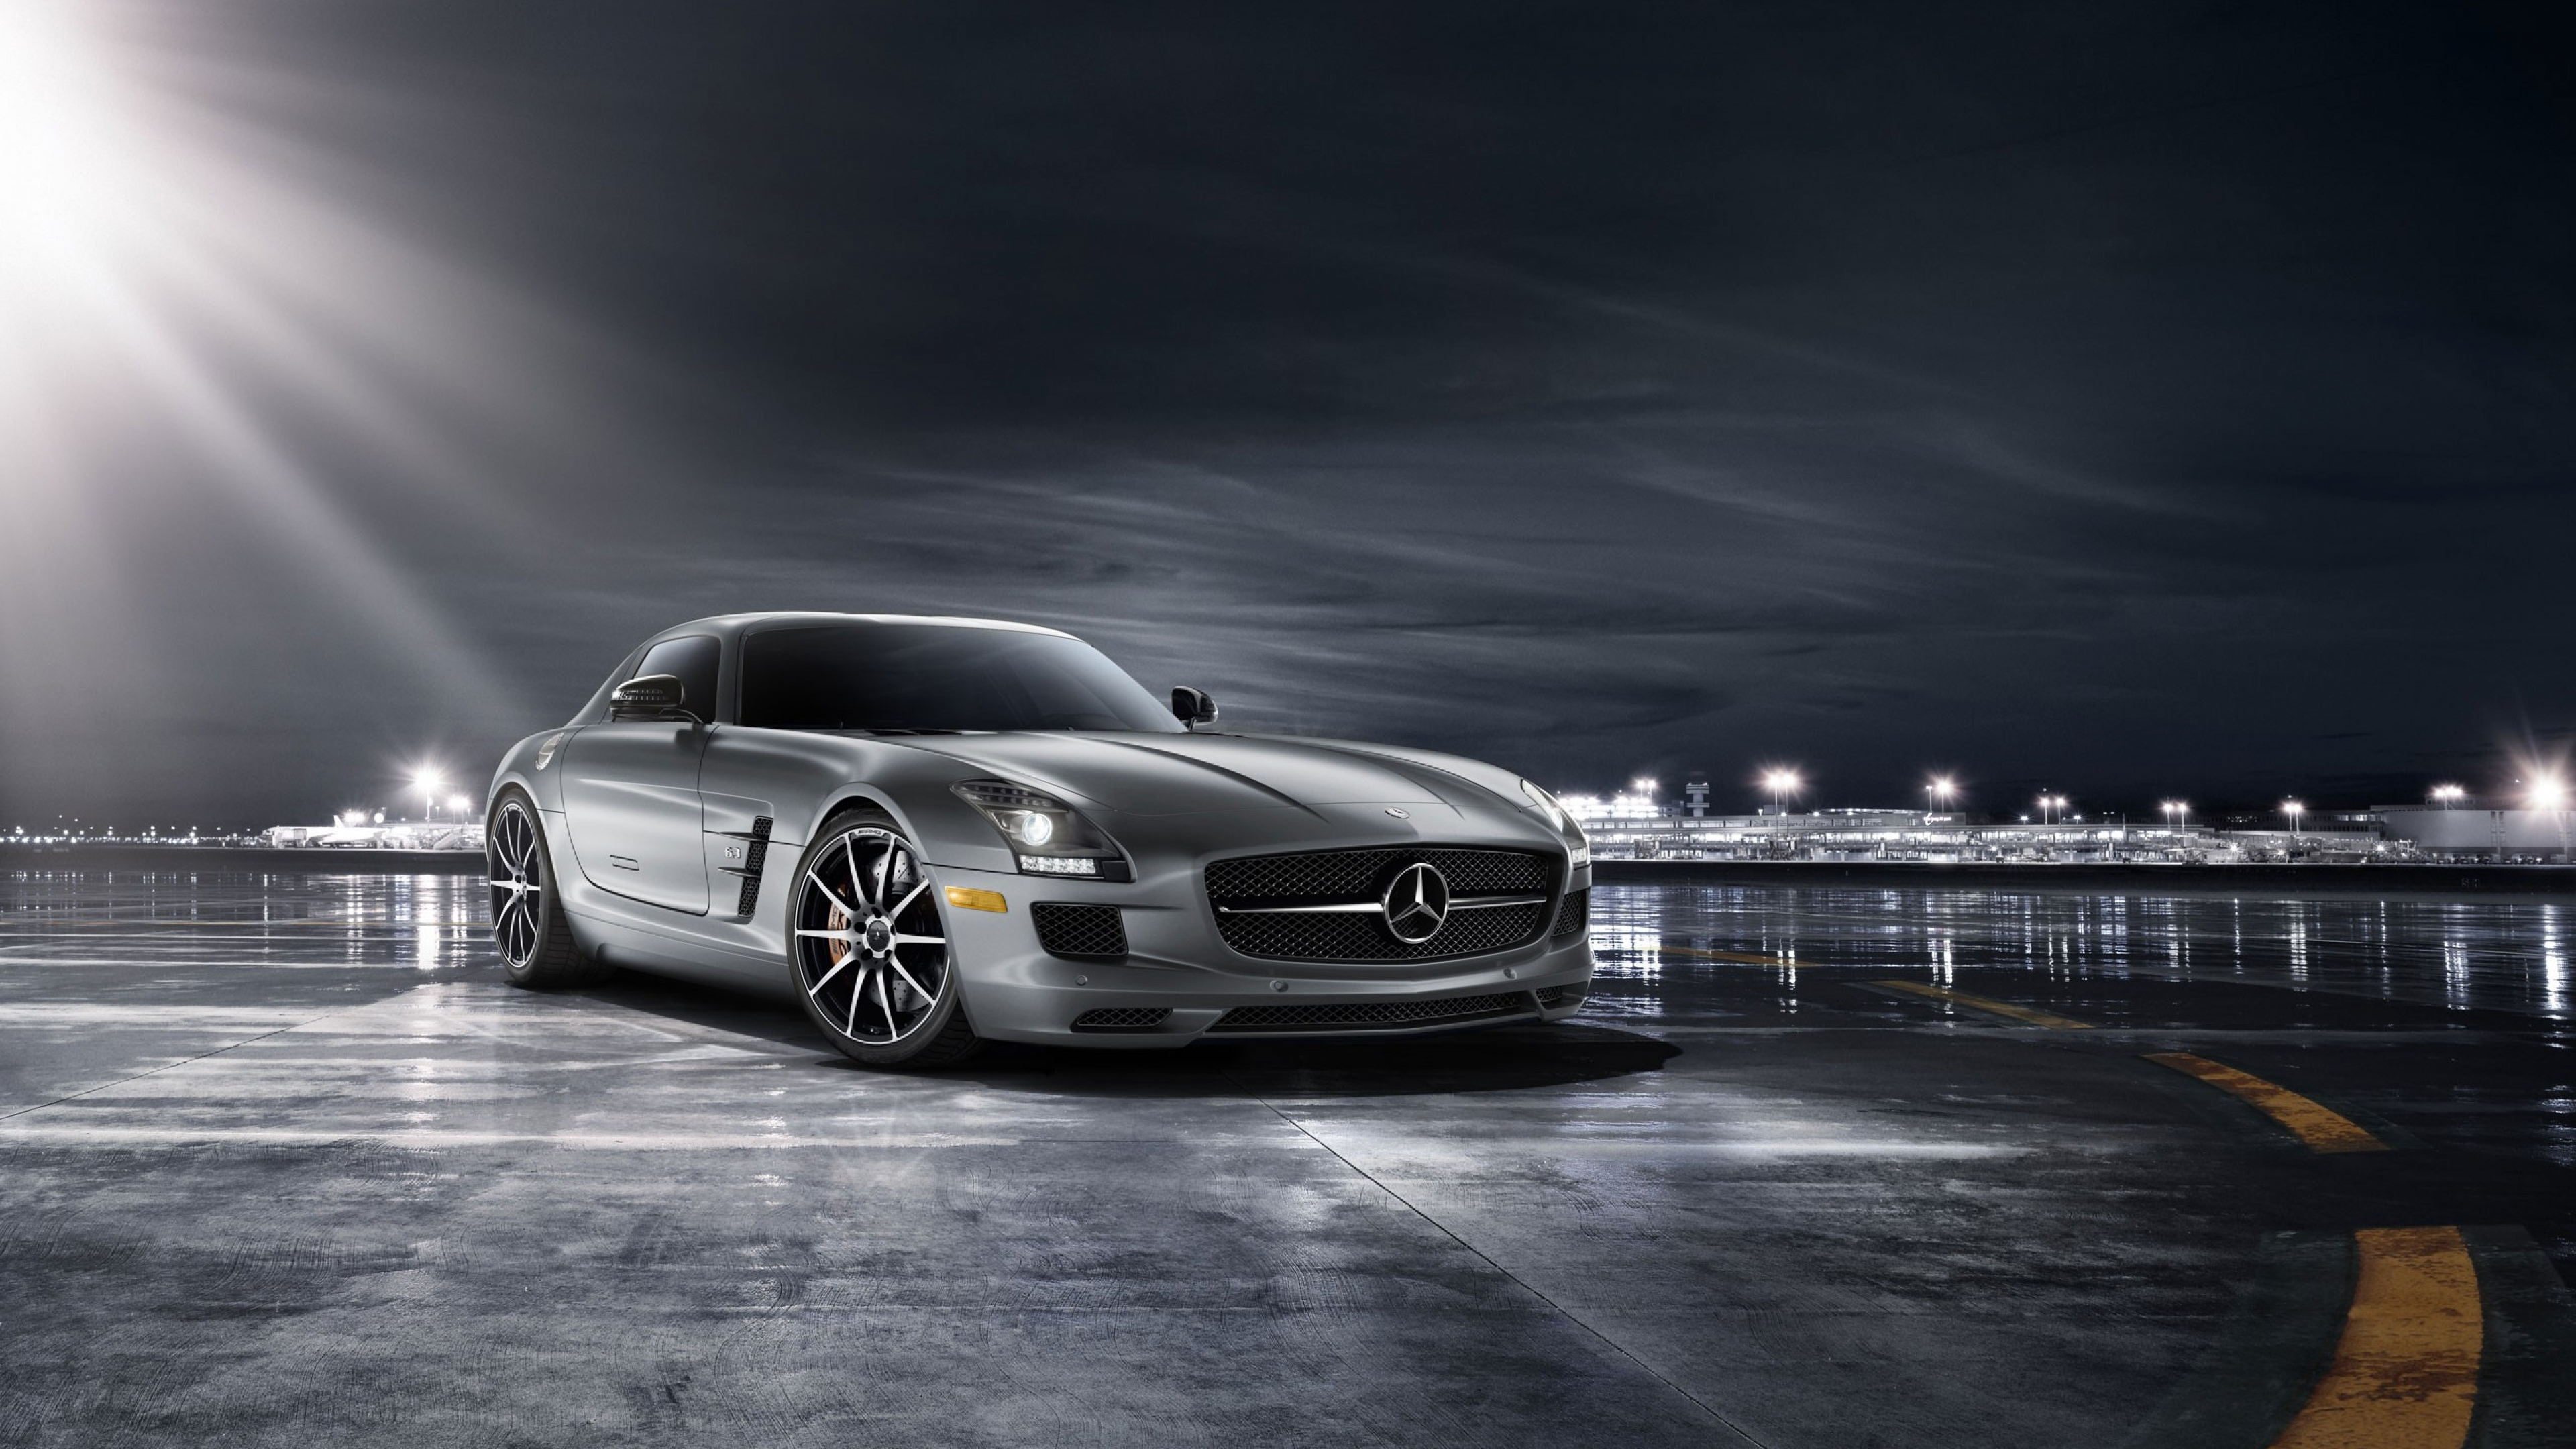 Mercedes benz sls amg wallpapers pictures images for Mercedes benz font download